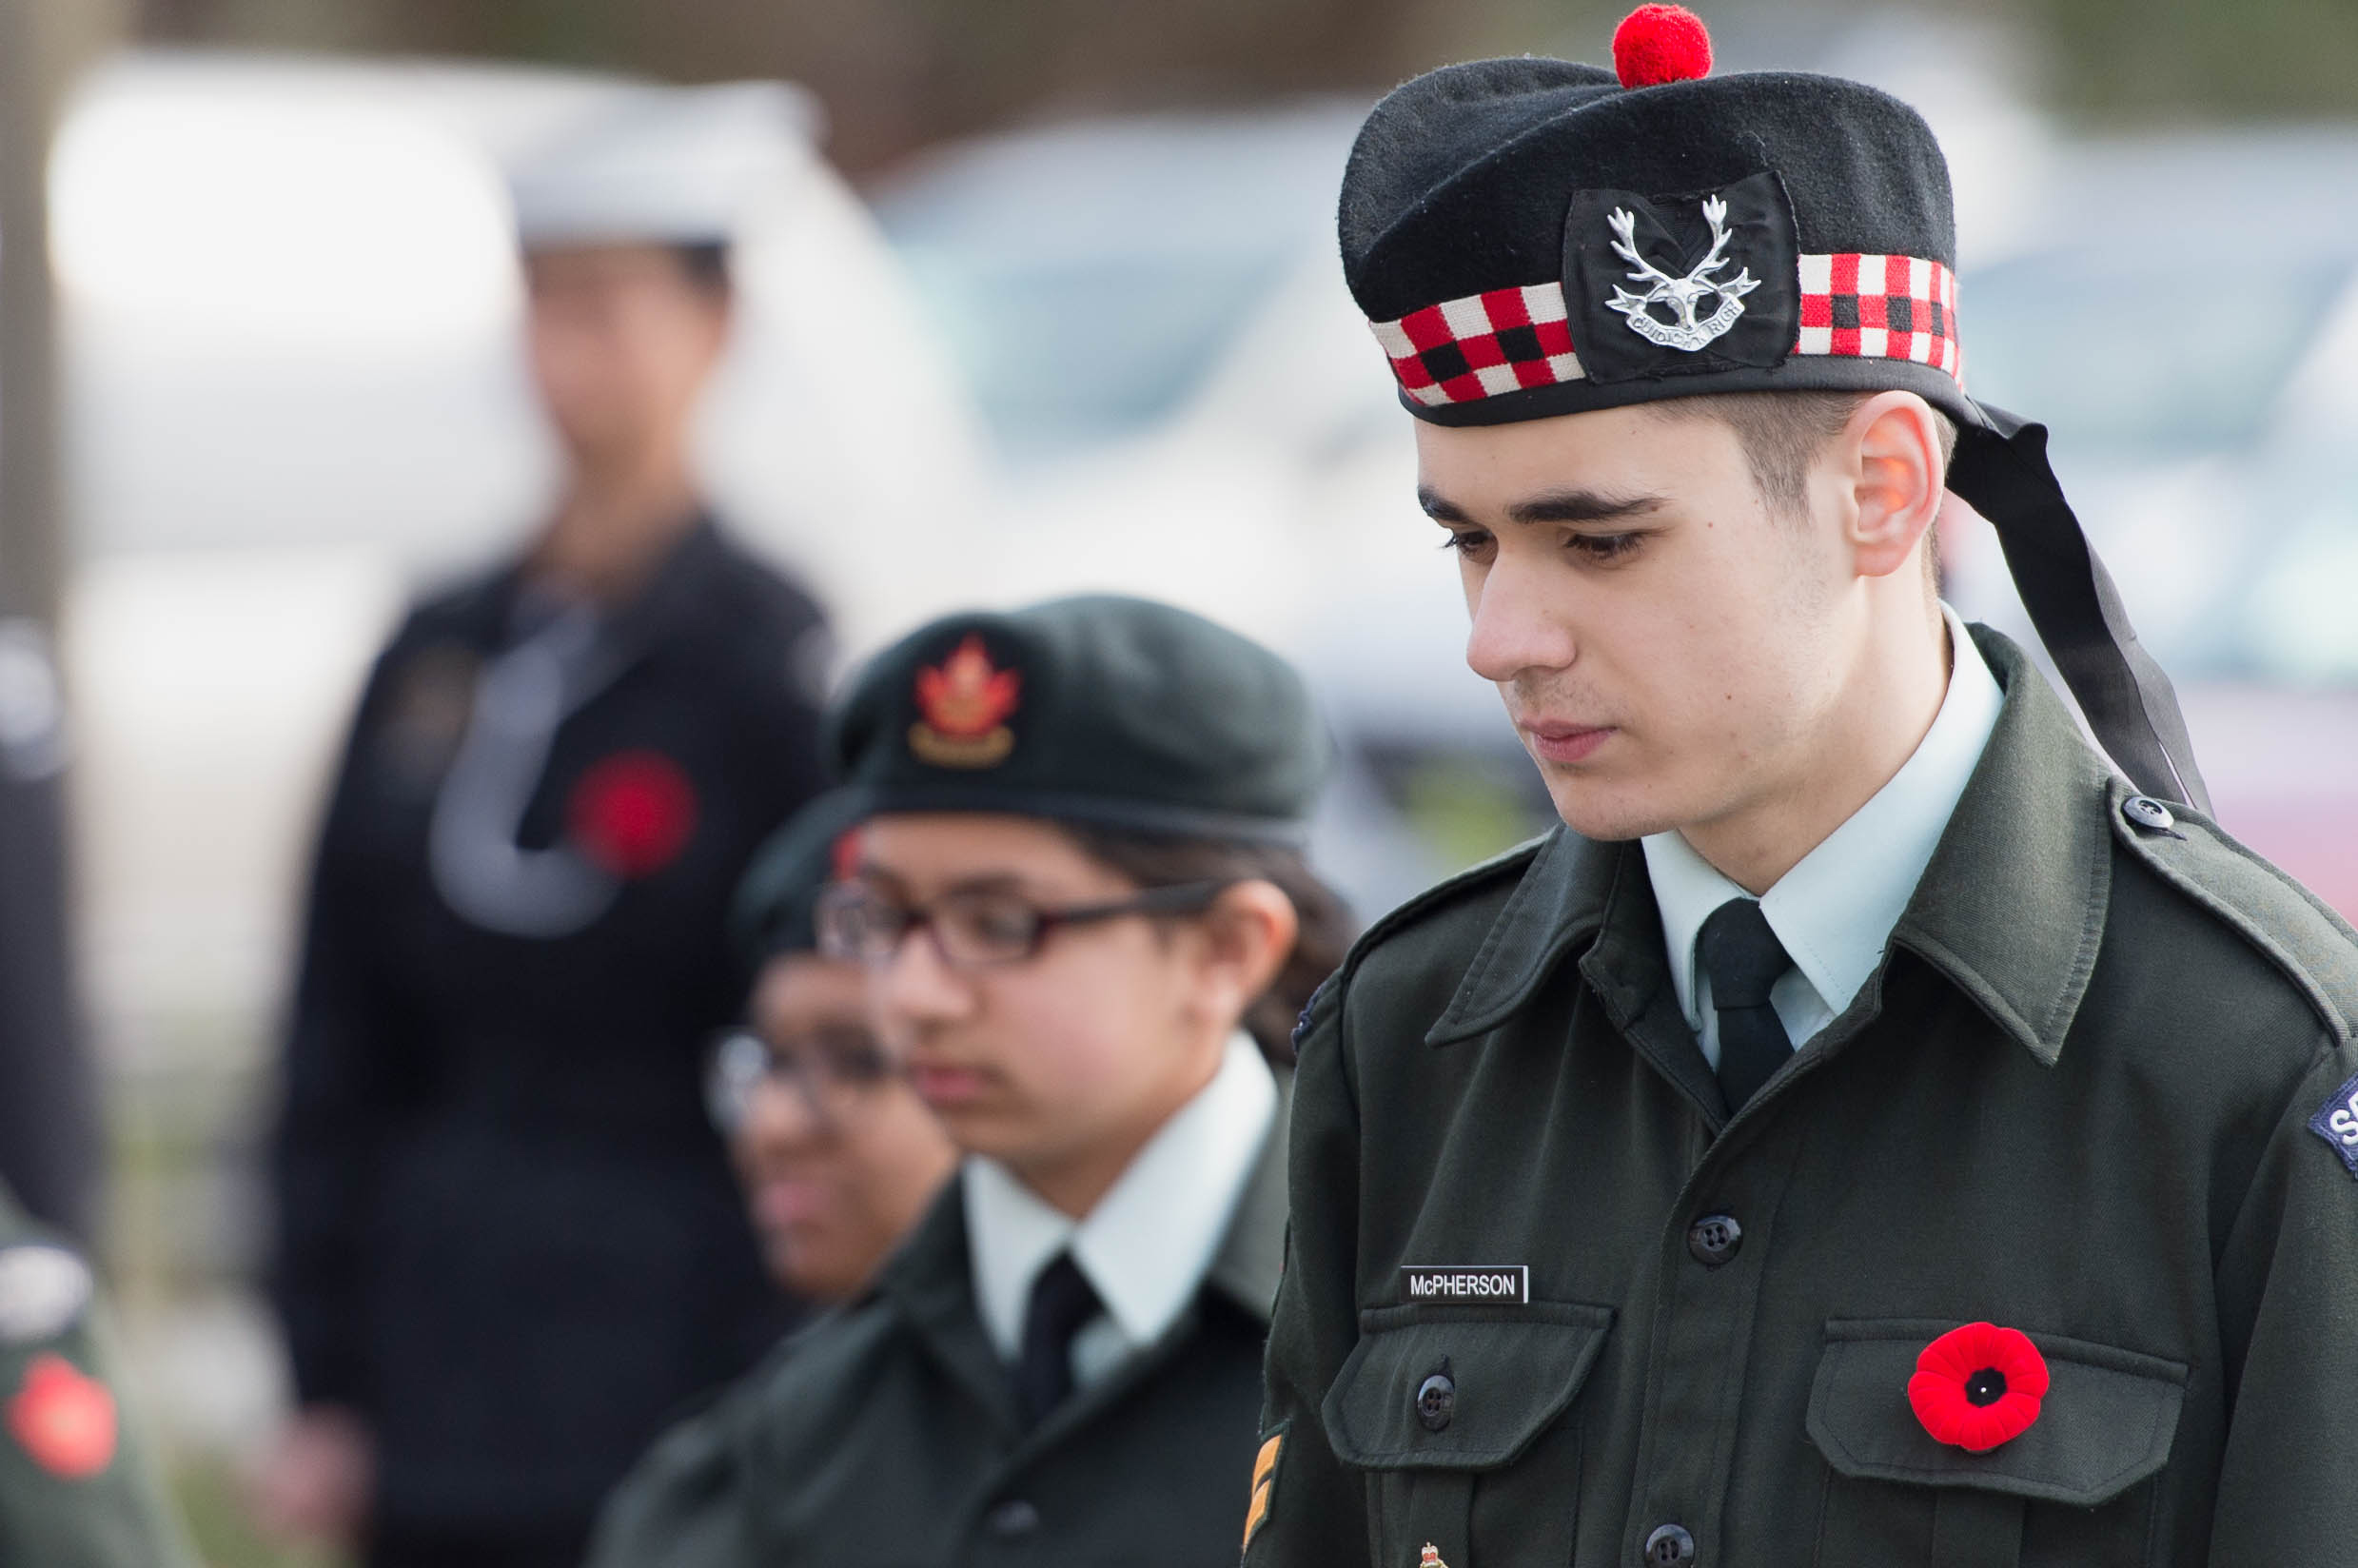 In Cloverdale, British Columbia, Army Cadets took part in a commemorative ceremony to mark the 100th anniversary of the Battle of Vimy Ridge. (phil edge)